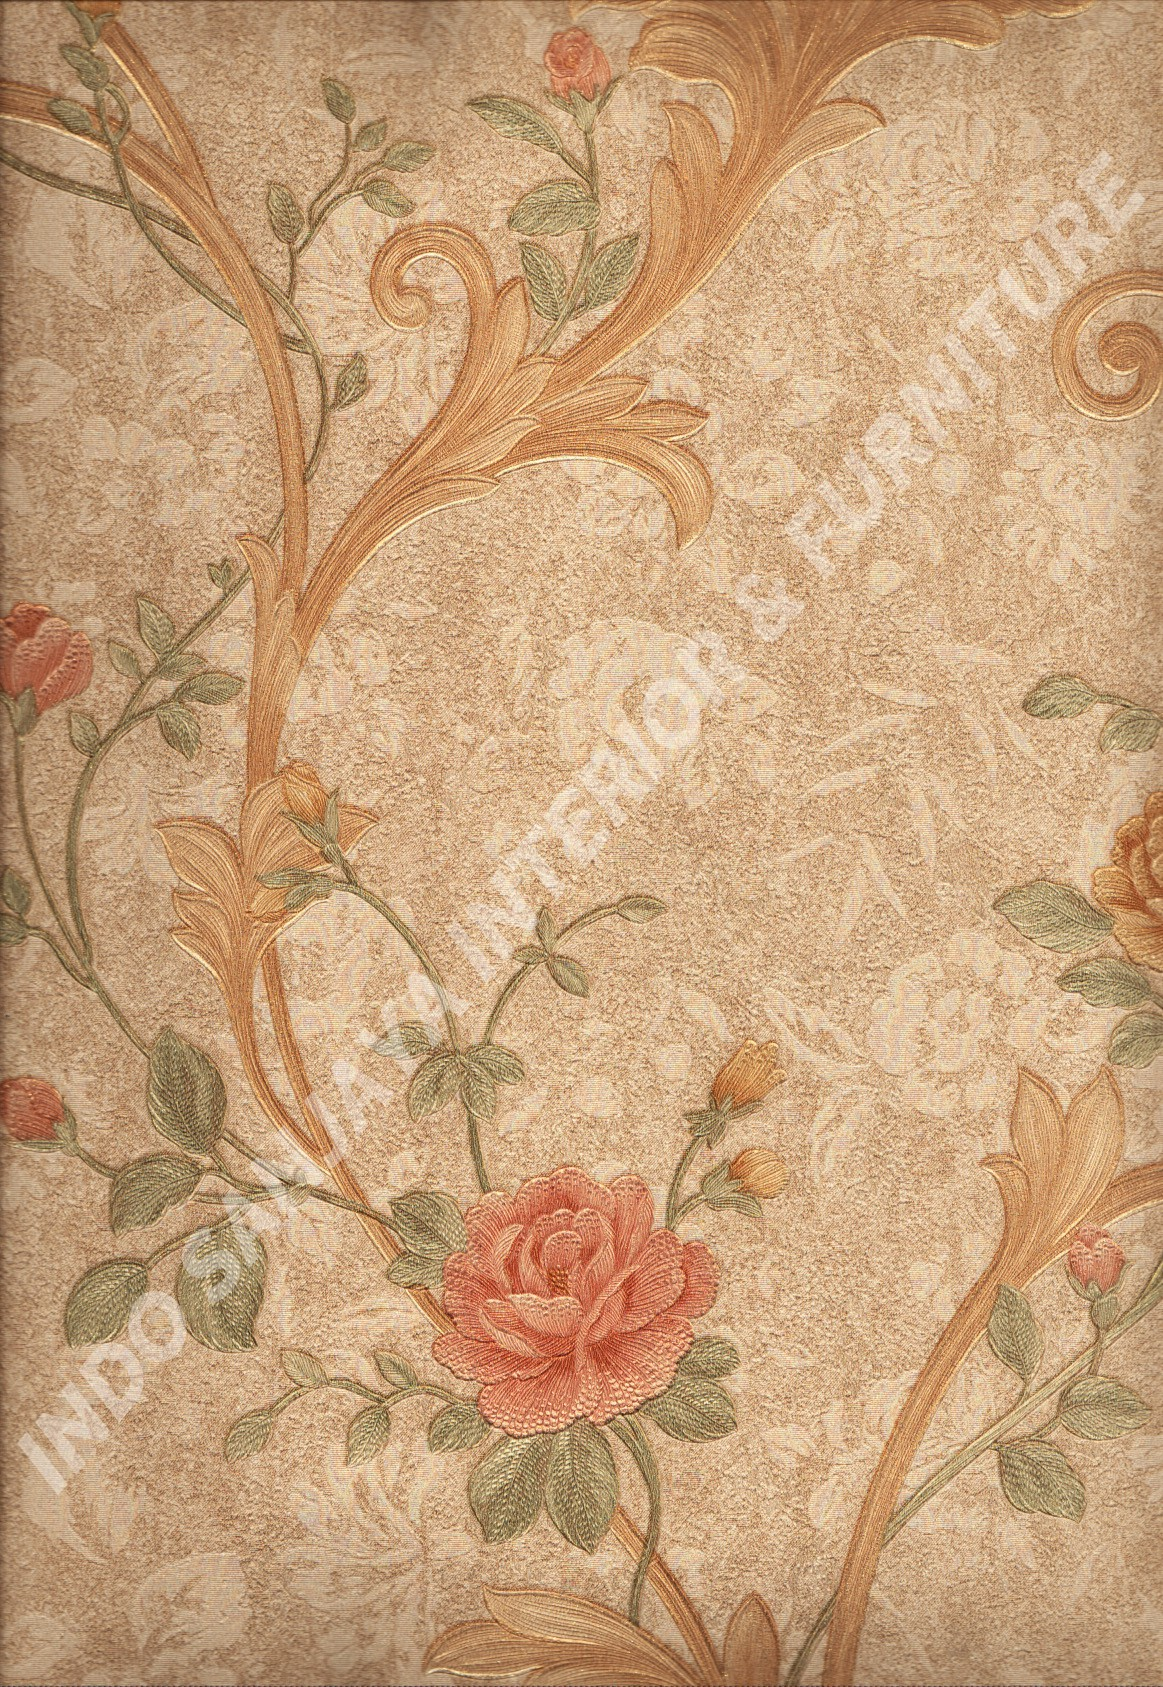 wallpaper   Wallpaper Bunga 51009-5:51009-5 corak  warna